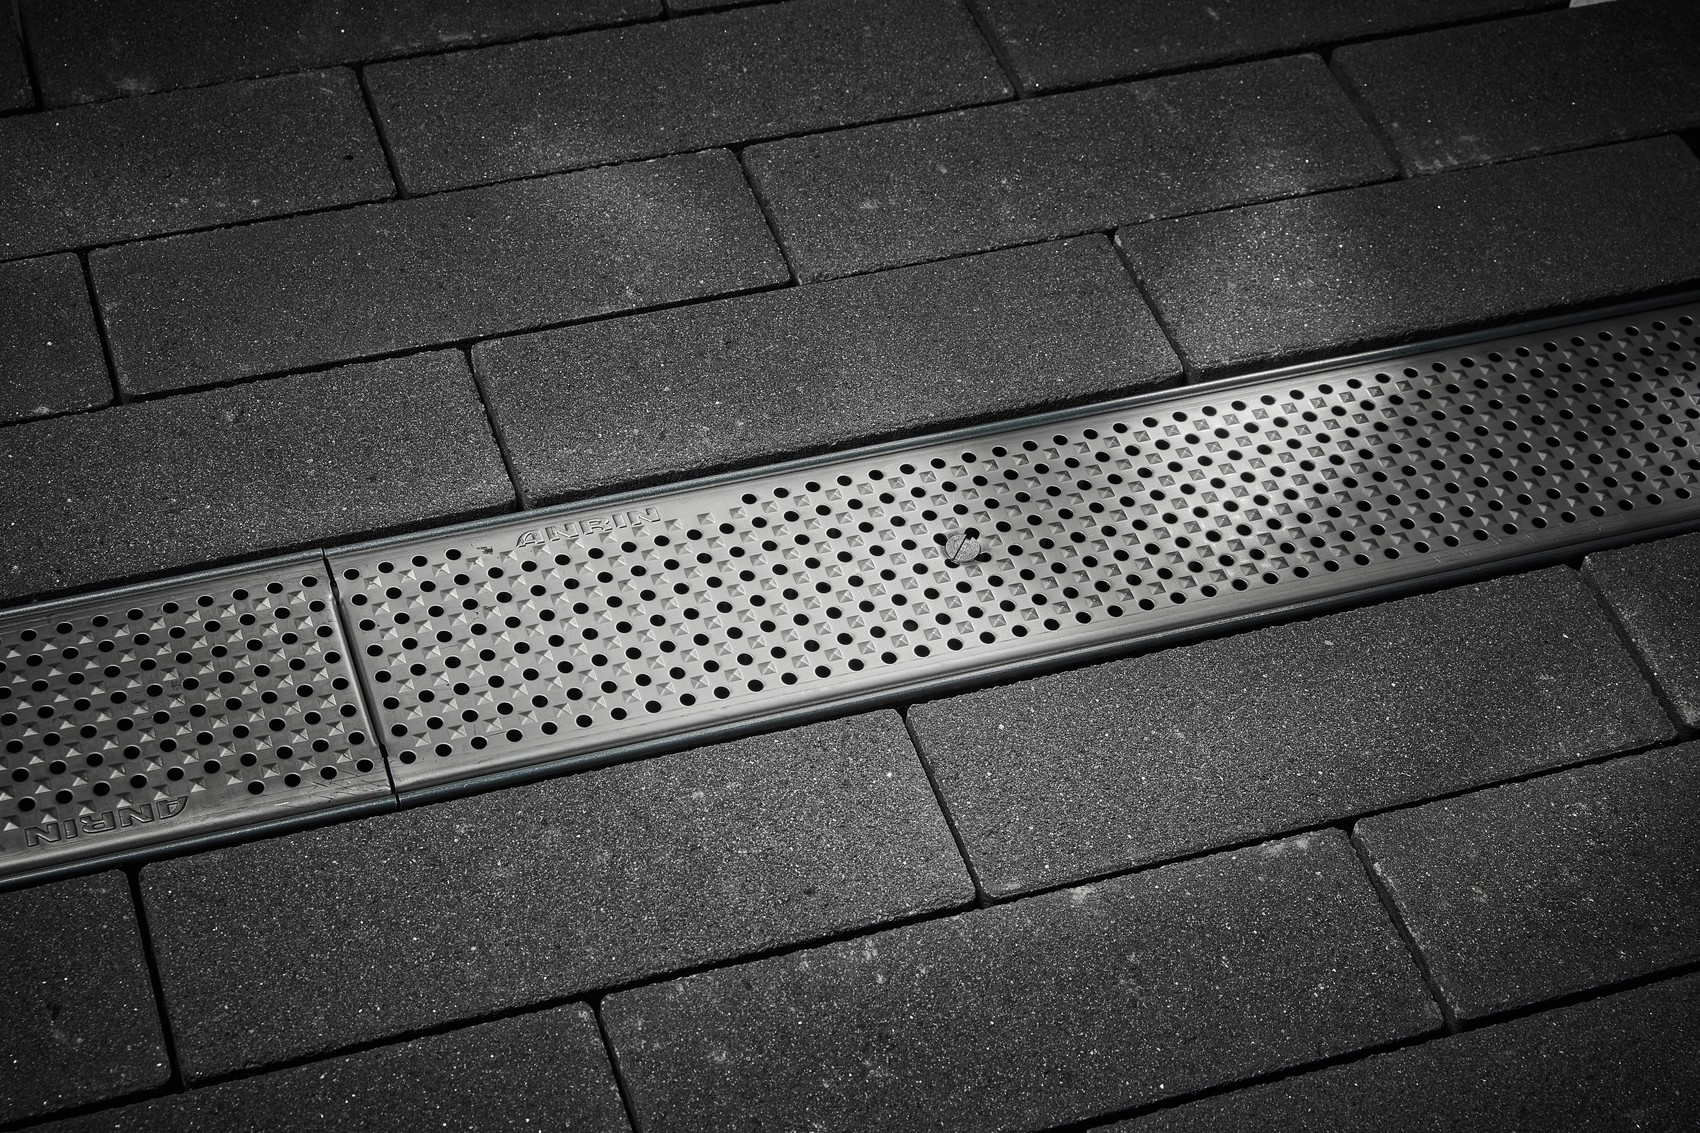 Perforated grating